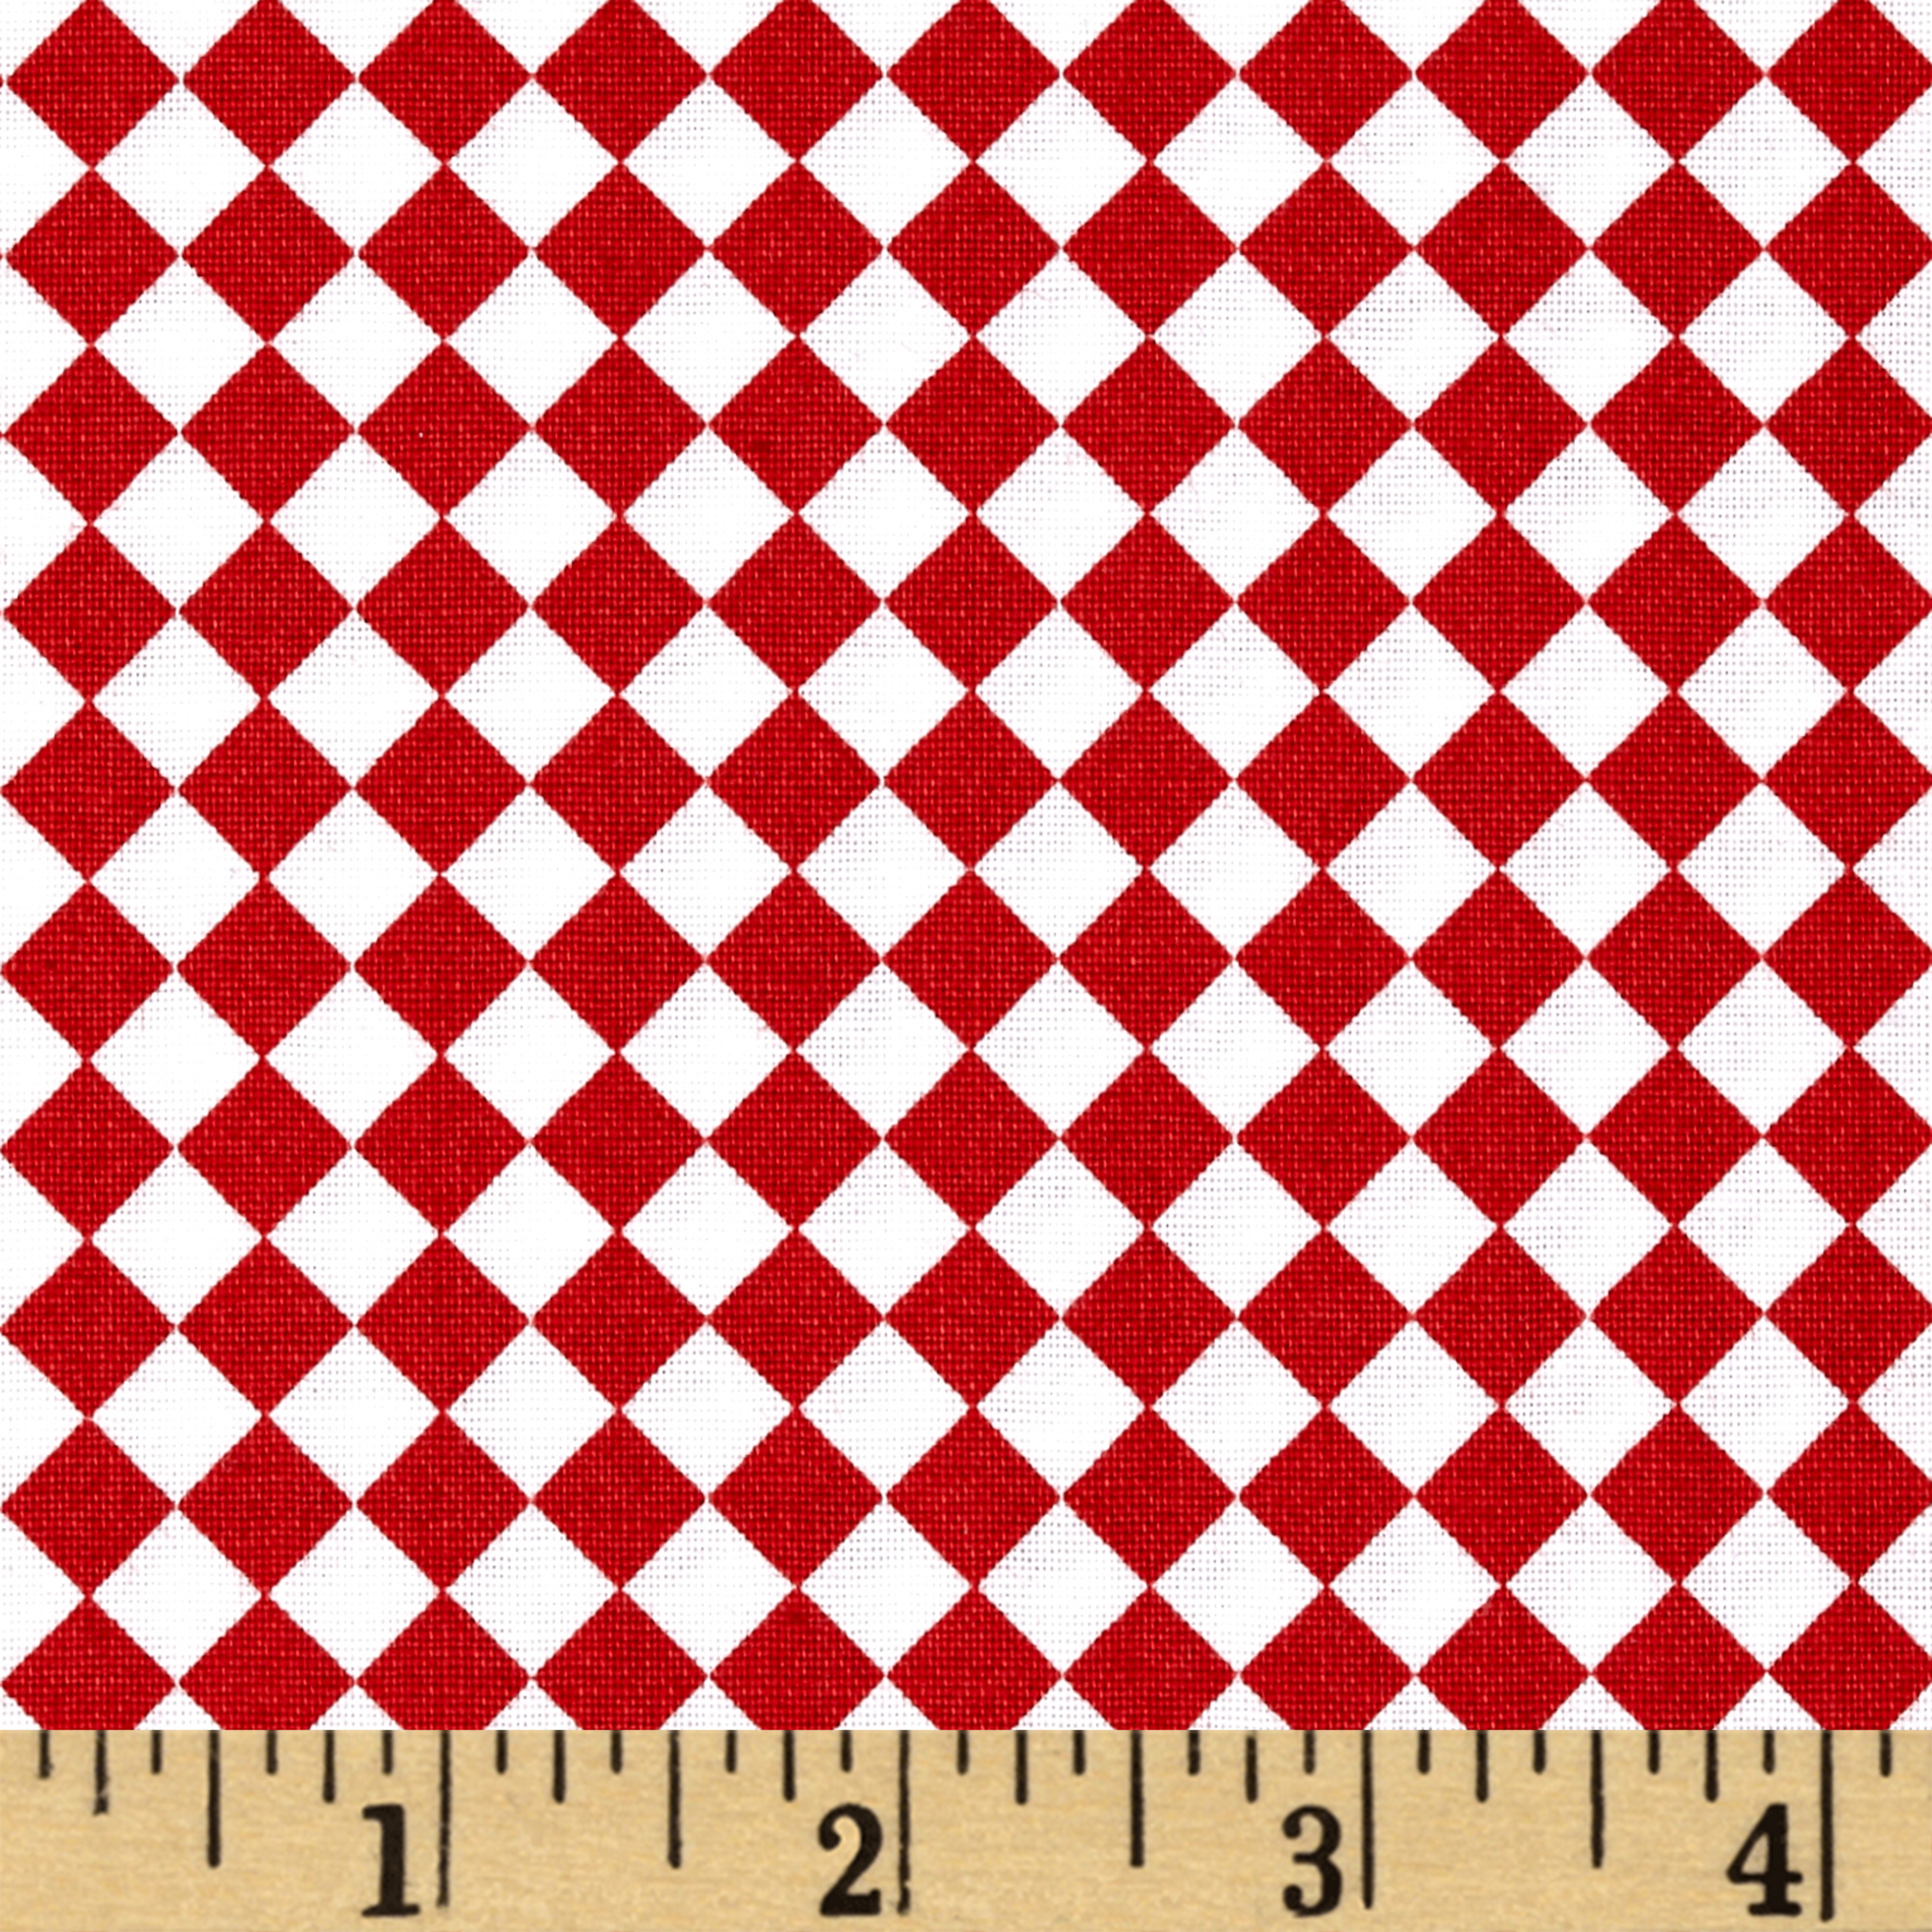 Farmer's Market Check Brick Fabric by Quilting Treasures in USA